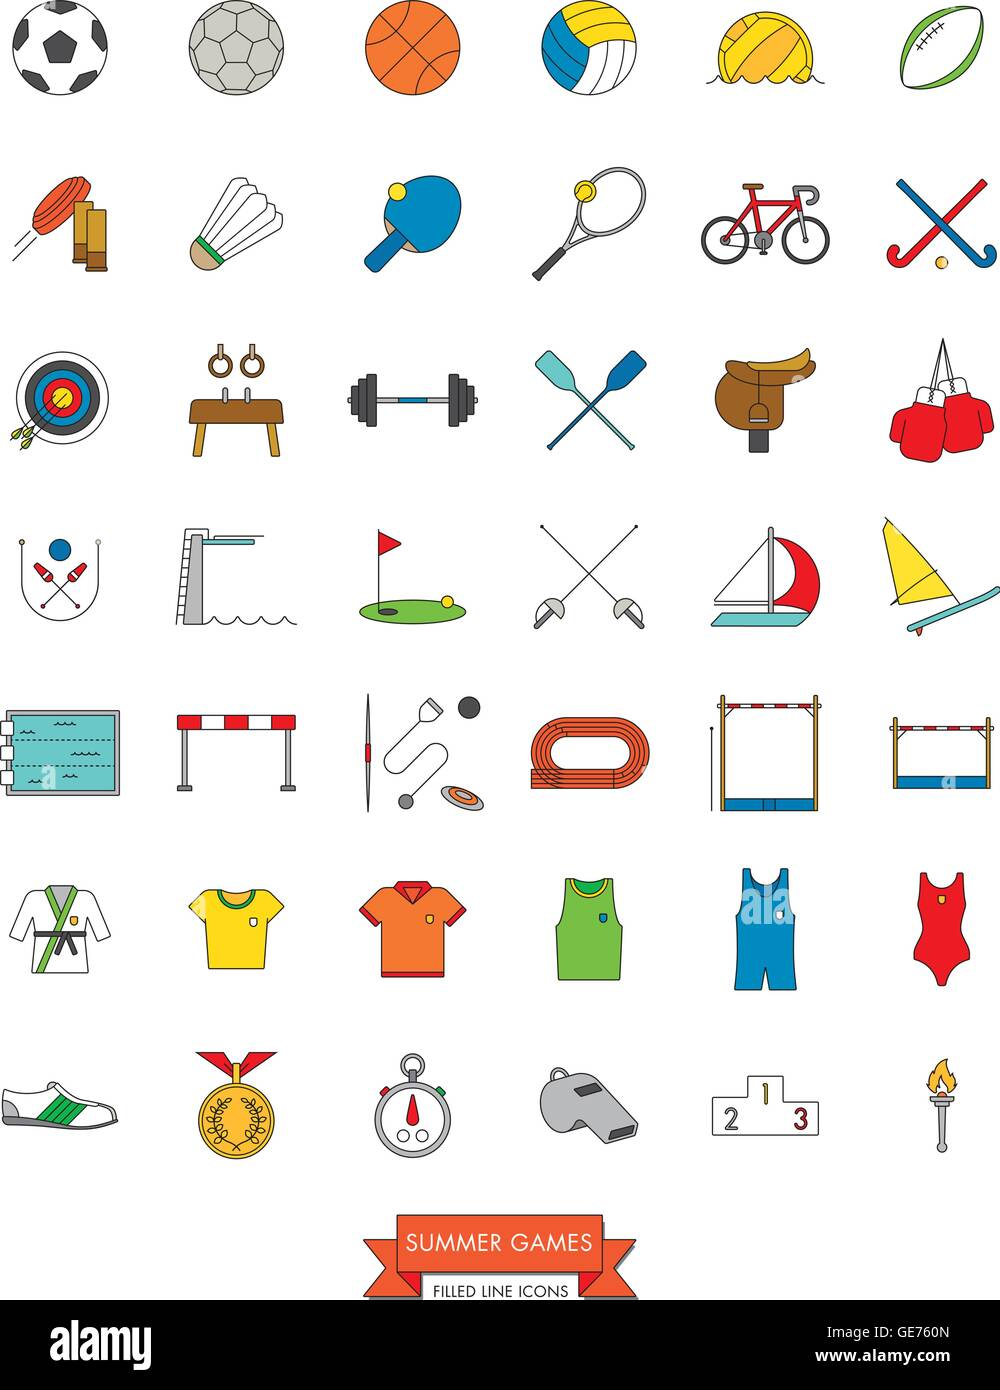 Set of 42 line icons related to Olympic Summer Games Vector Stock Vector